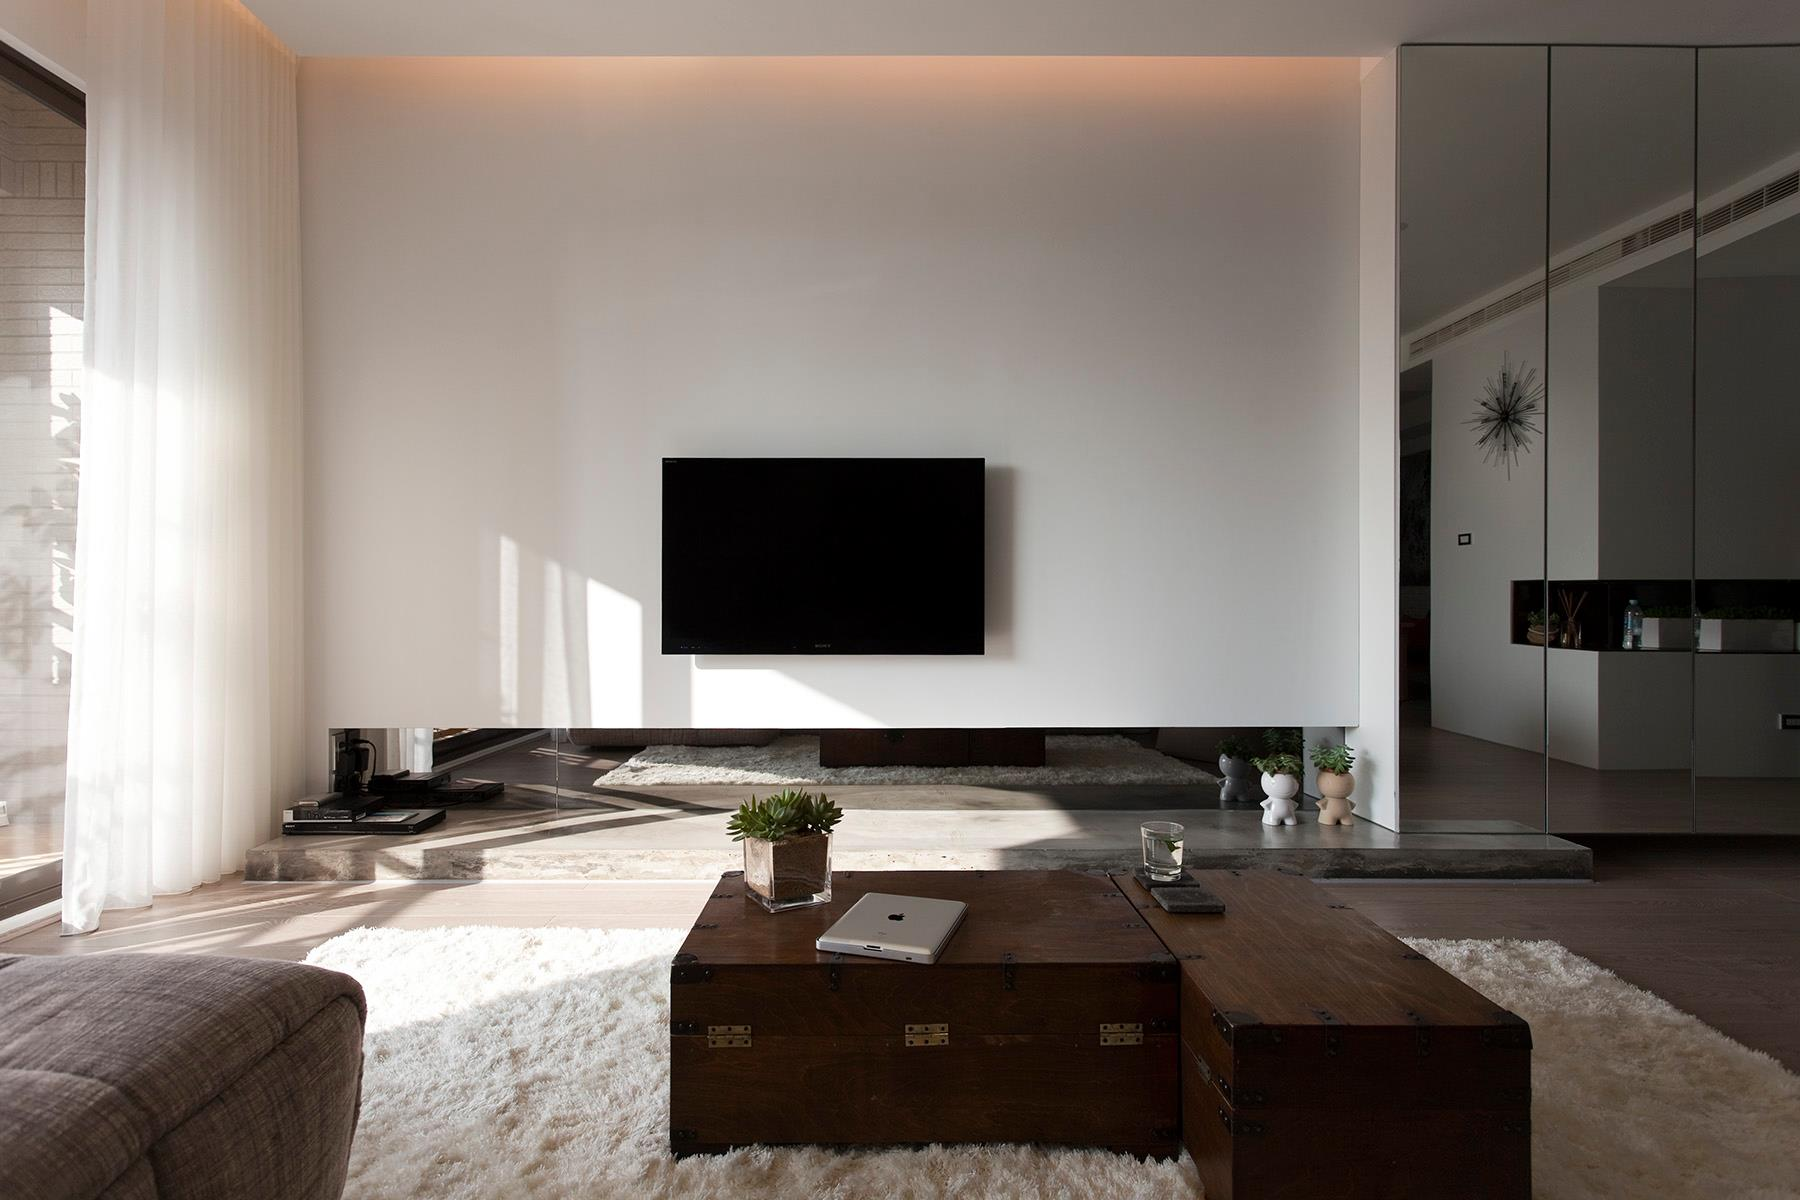 70 Living room design ideas to create an appealing atmosphere ...